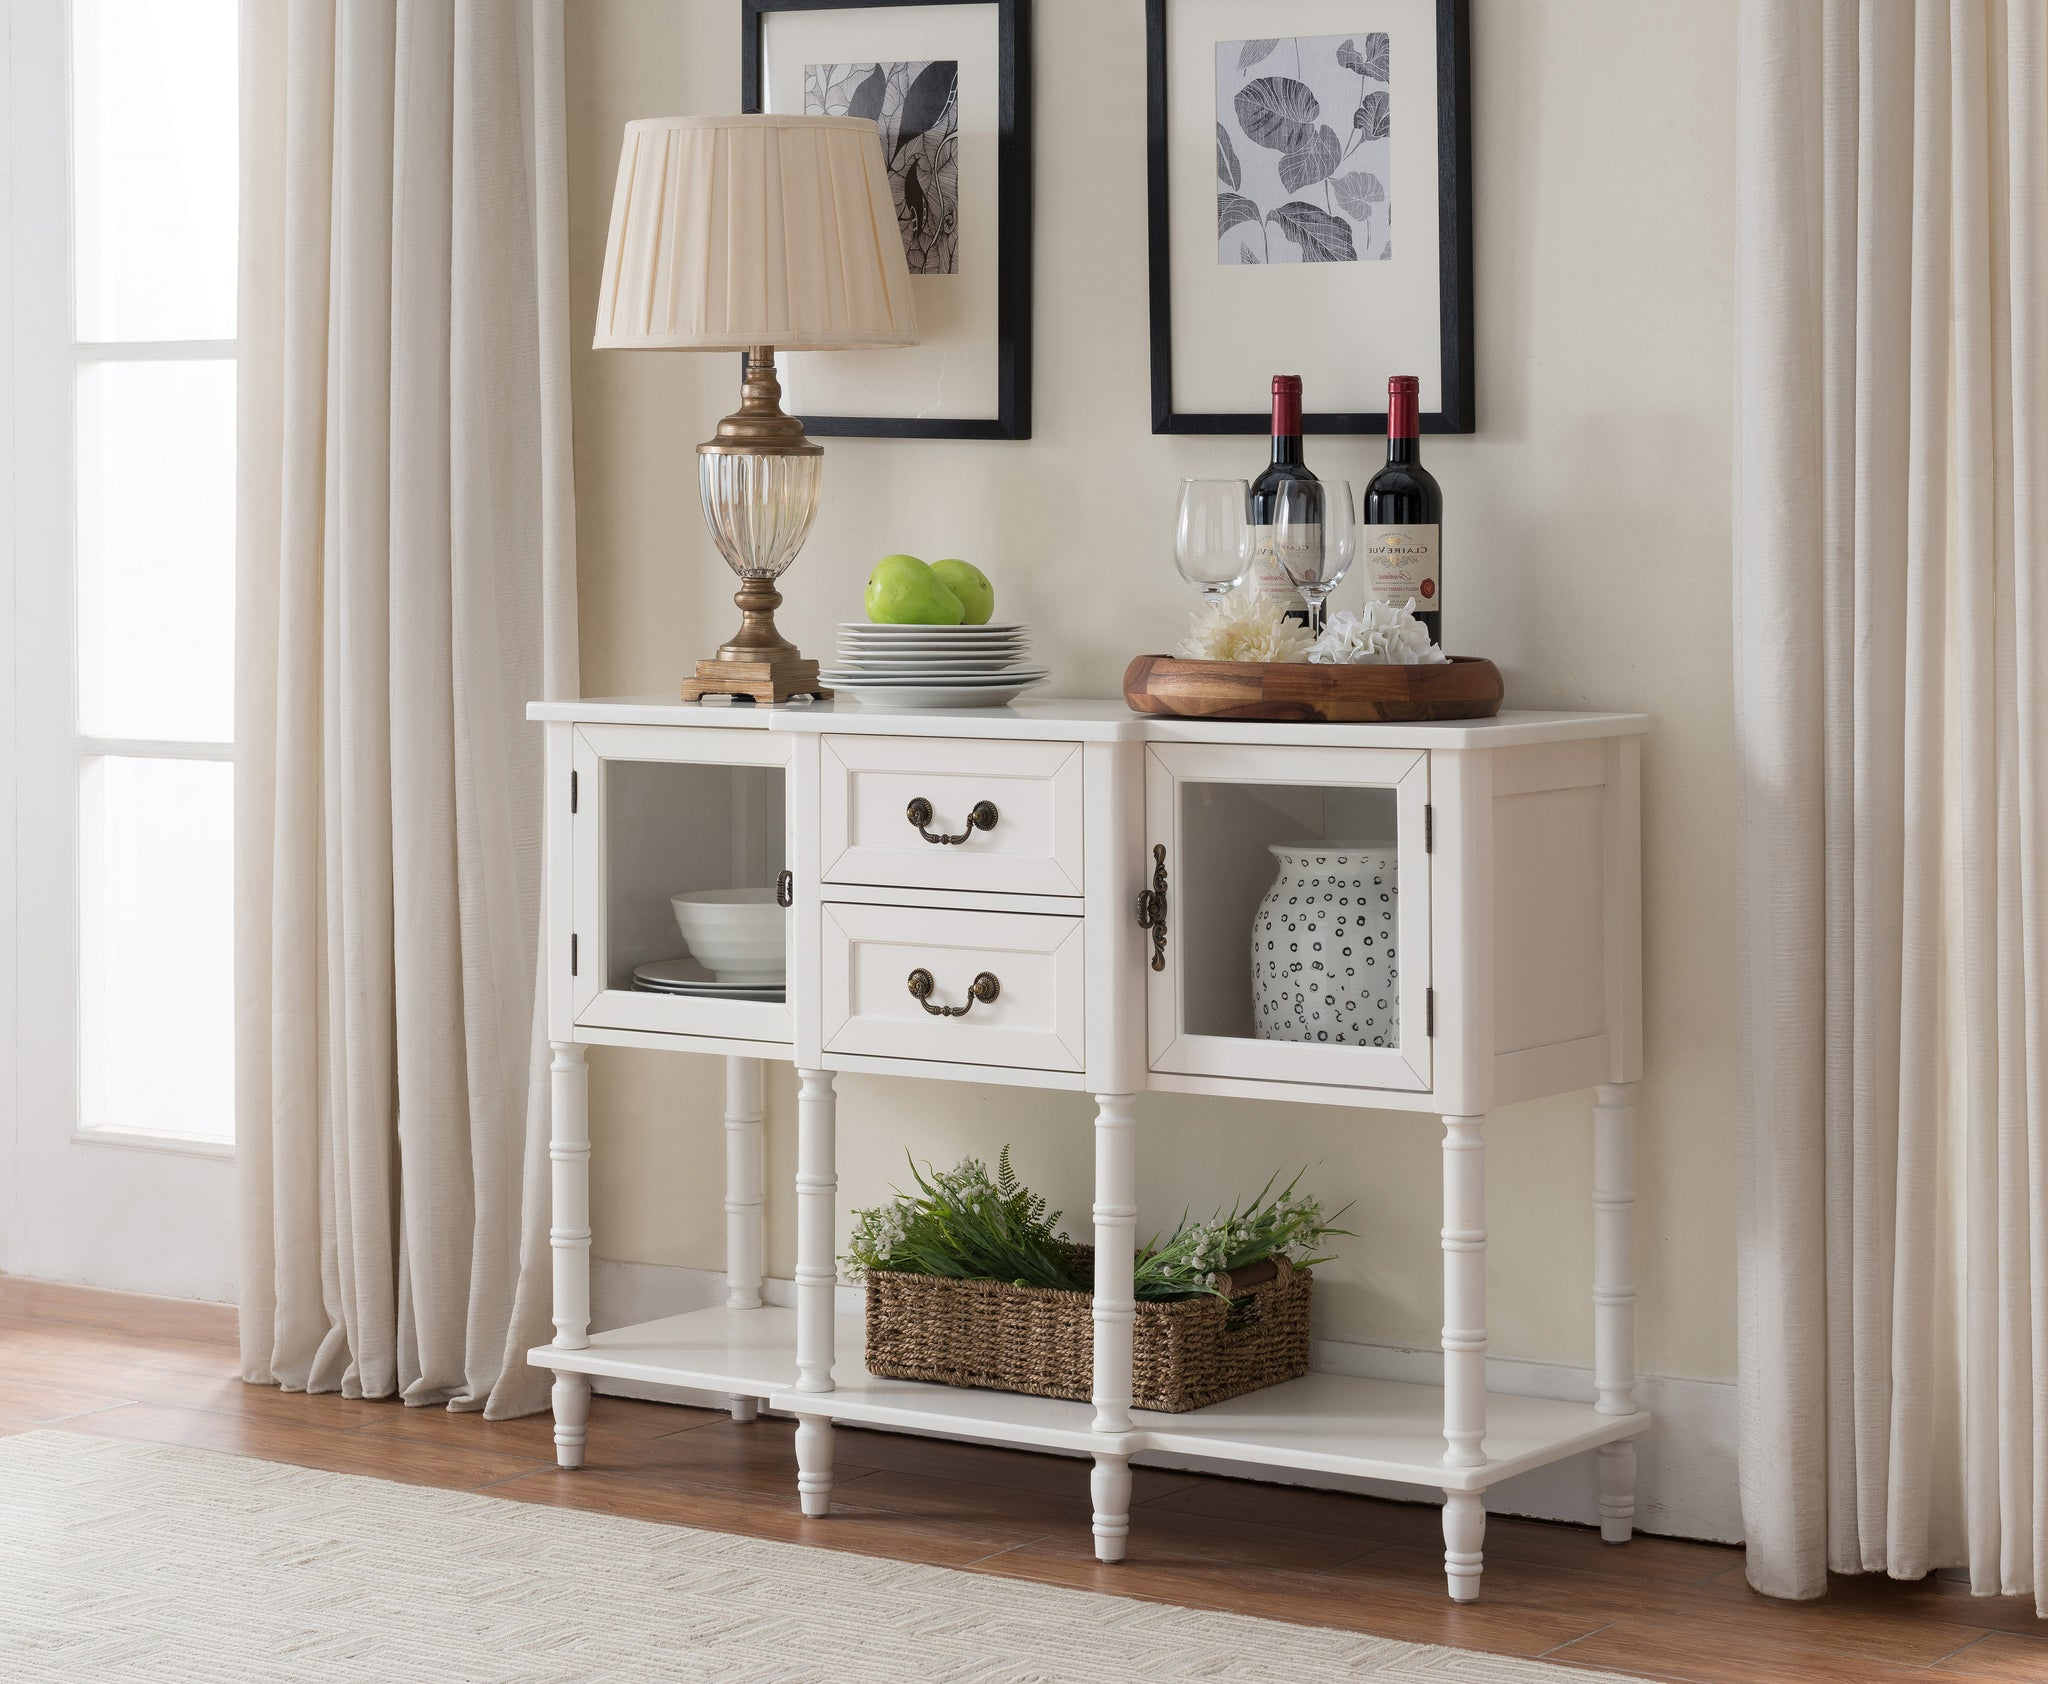 Isaiah Cream White Wood Drawer & Cabinet Contemporary ...